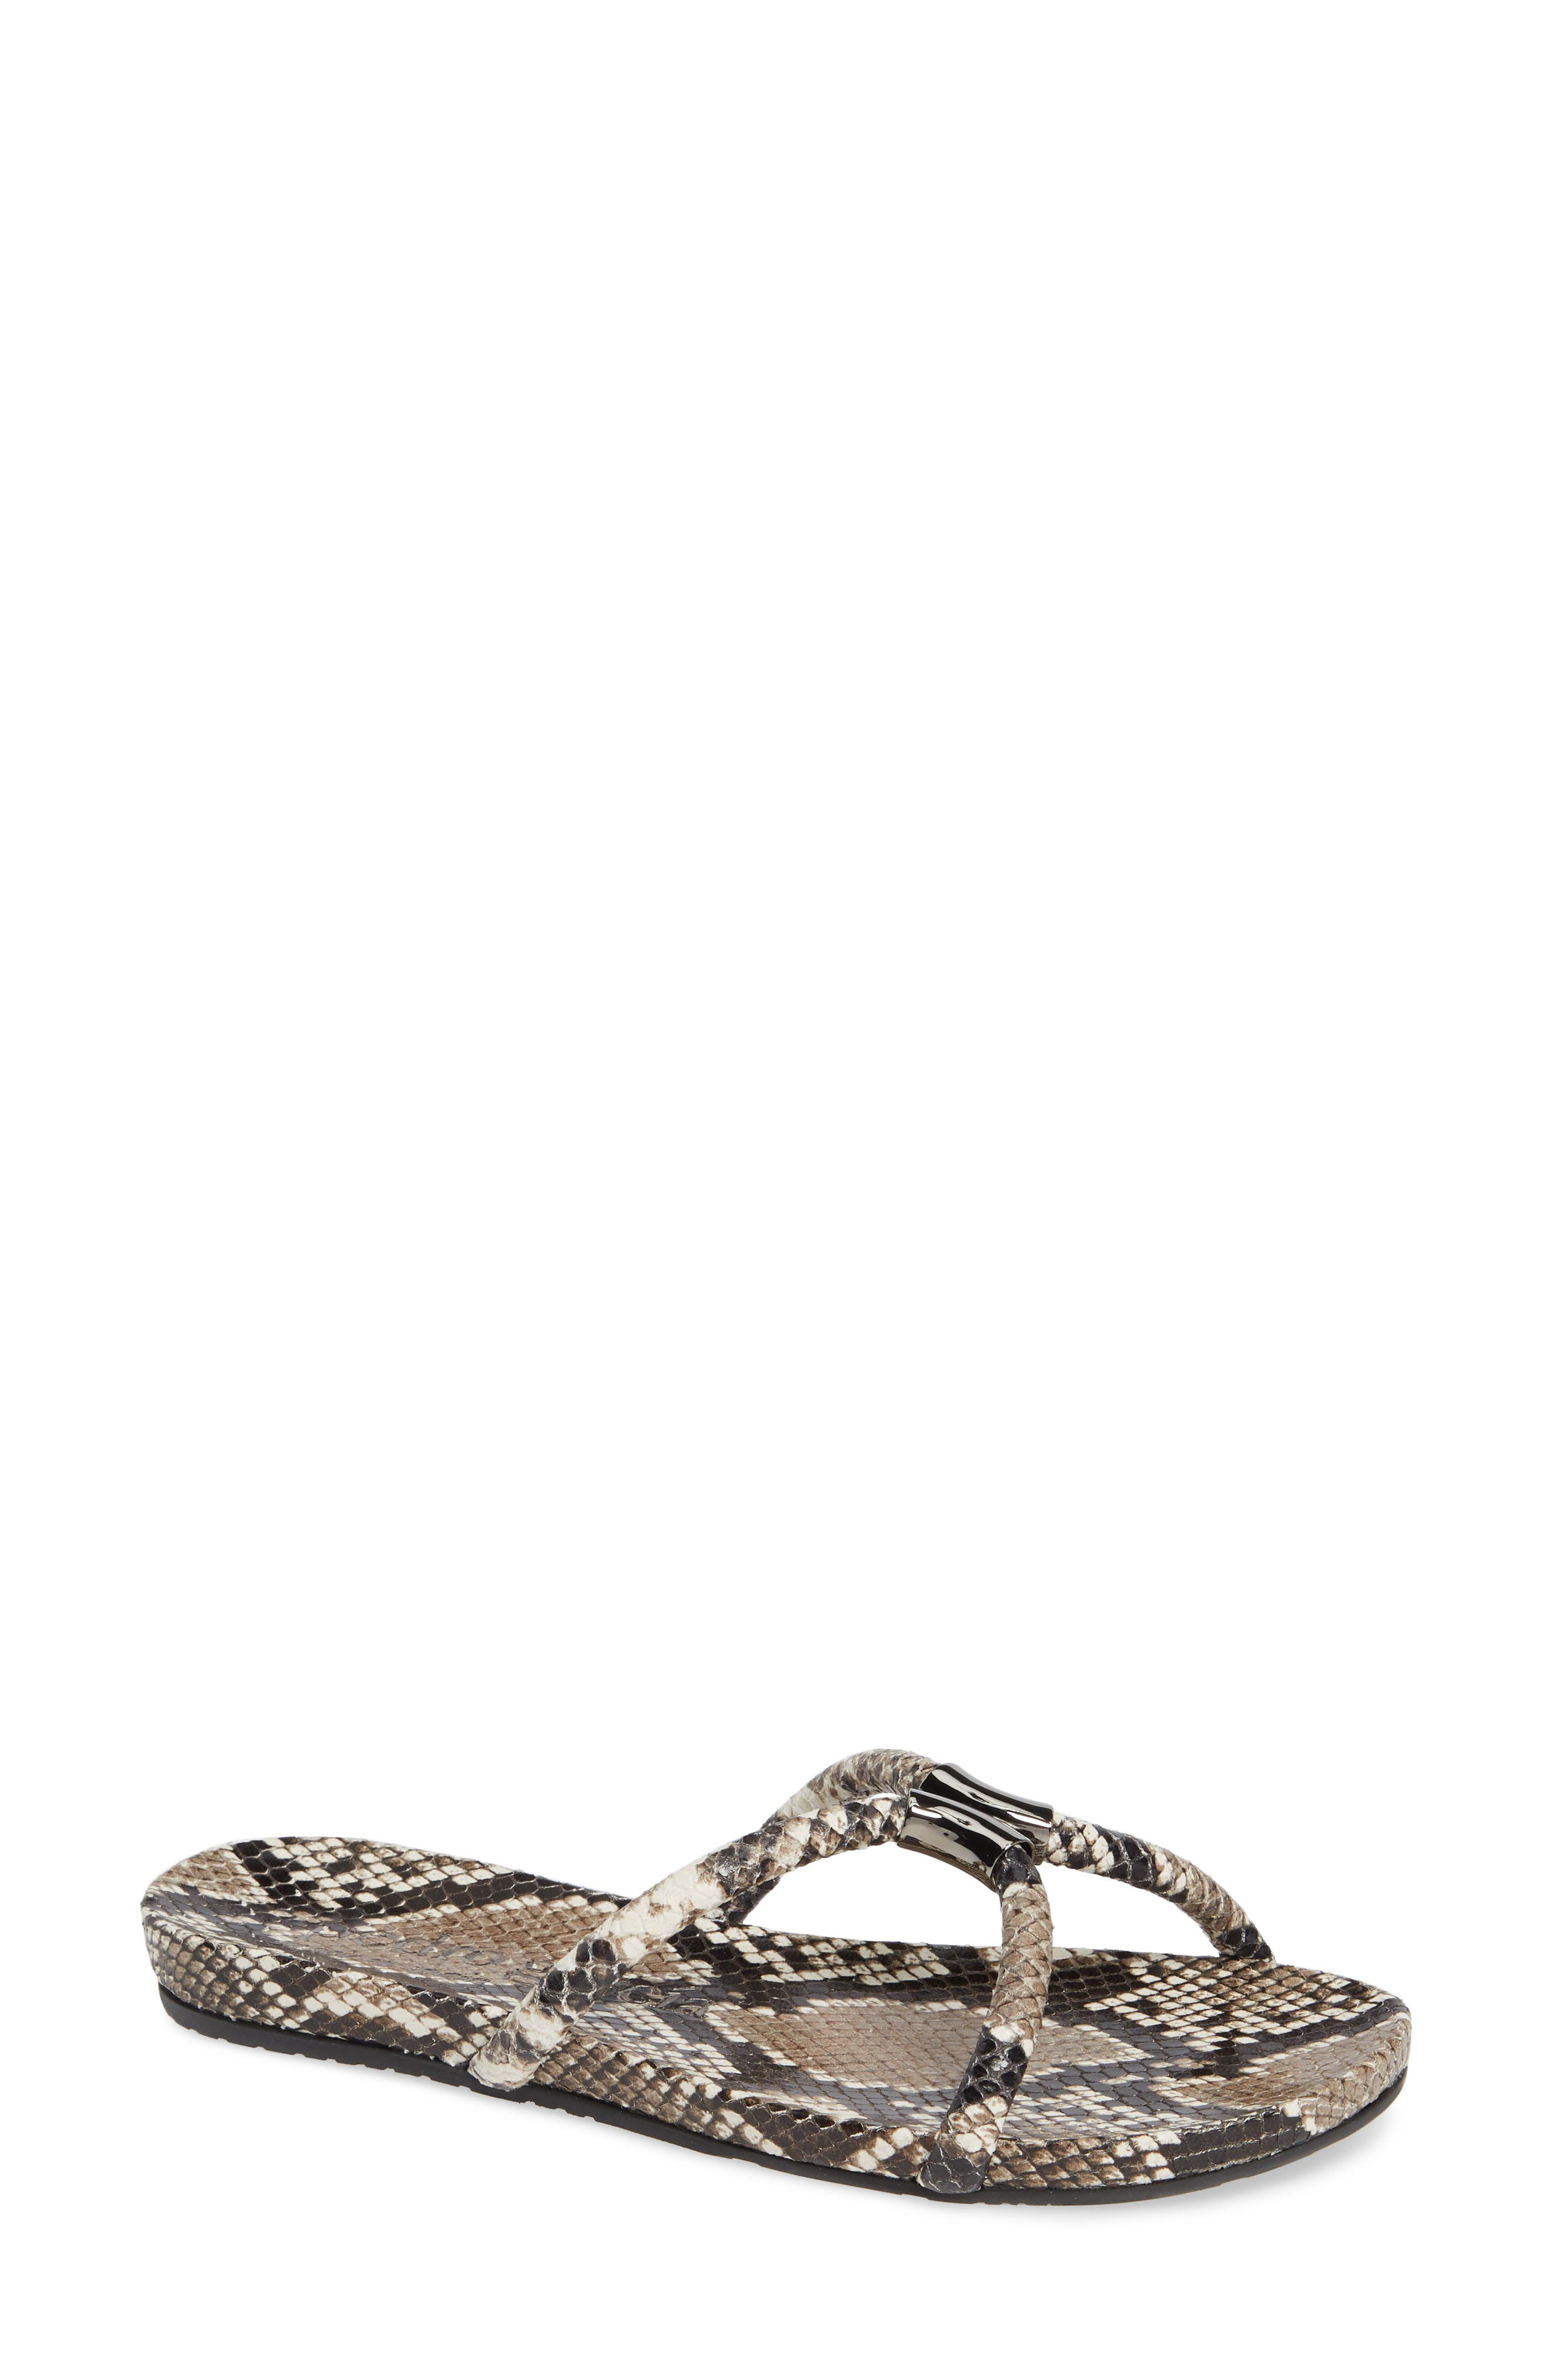 PEDRO GARCIA, Geminy Slide Sandal, Main thumbnail 1, color, NATURAL PYTHON